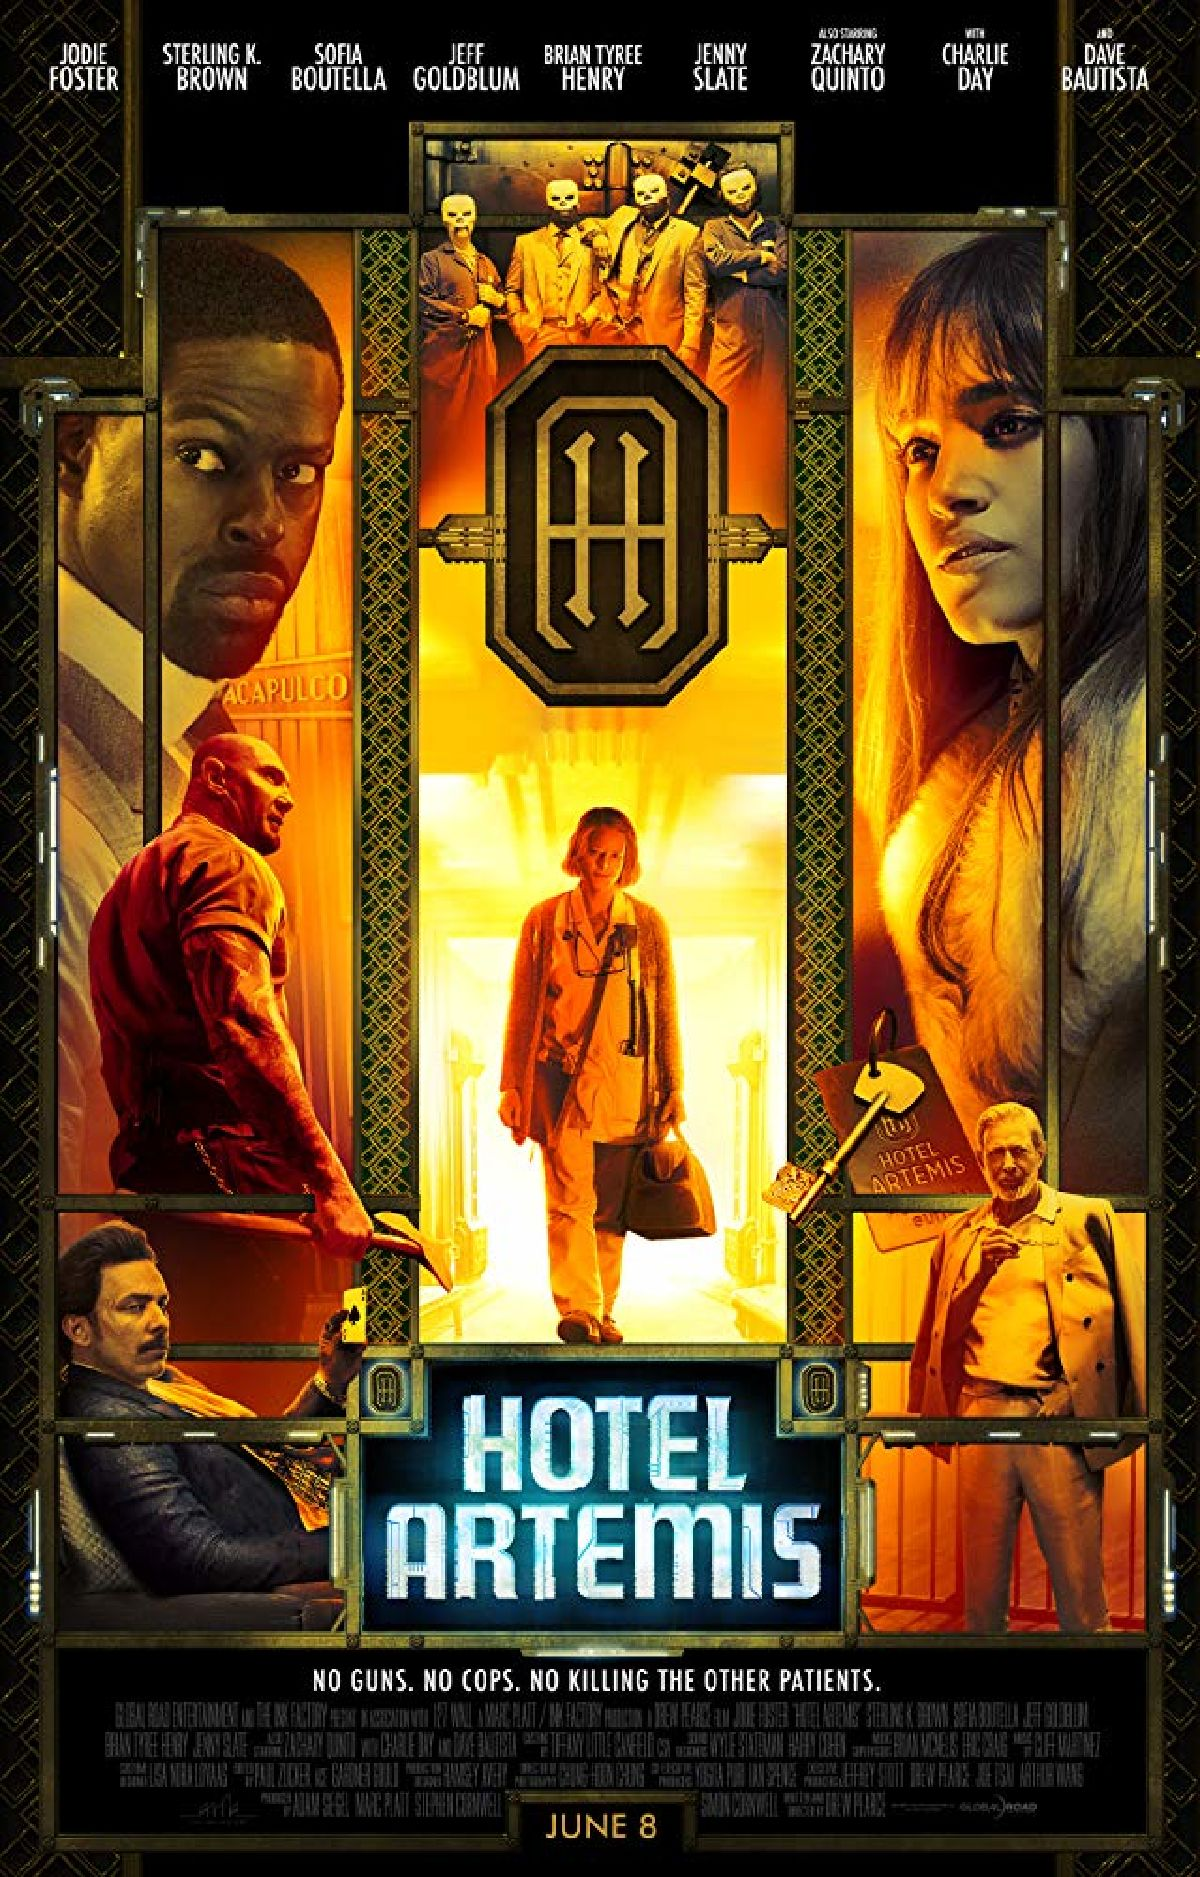 'Hotel Artemis' movie poster